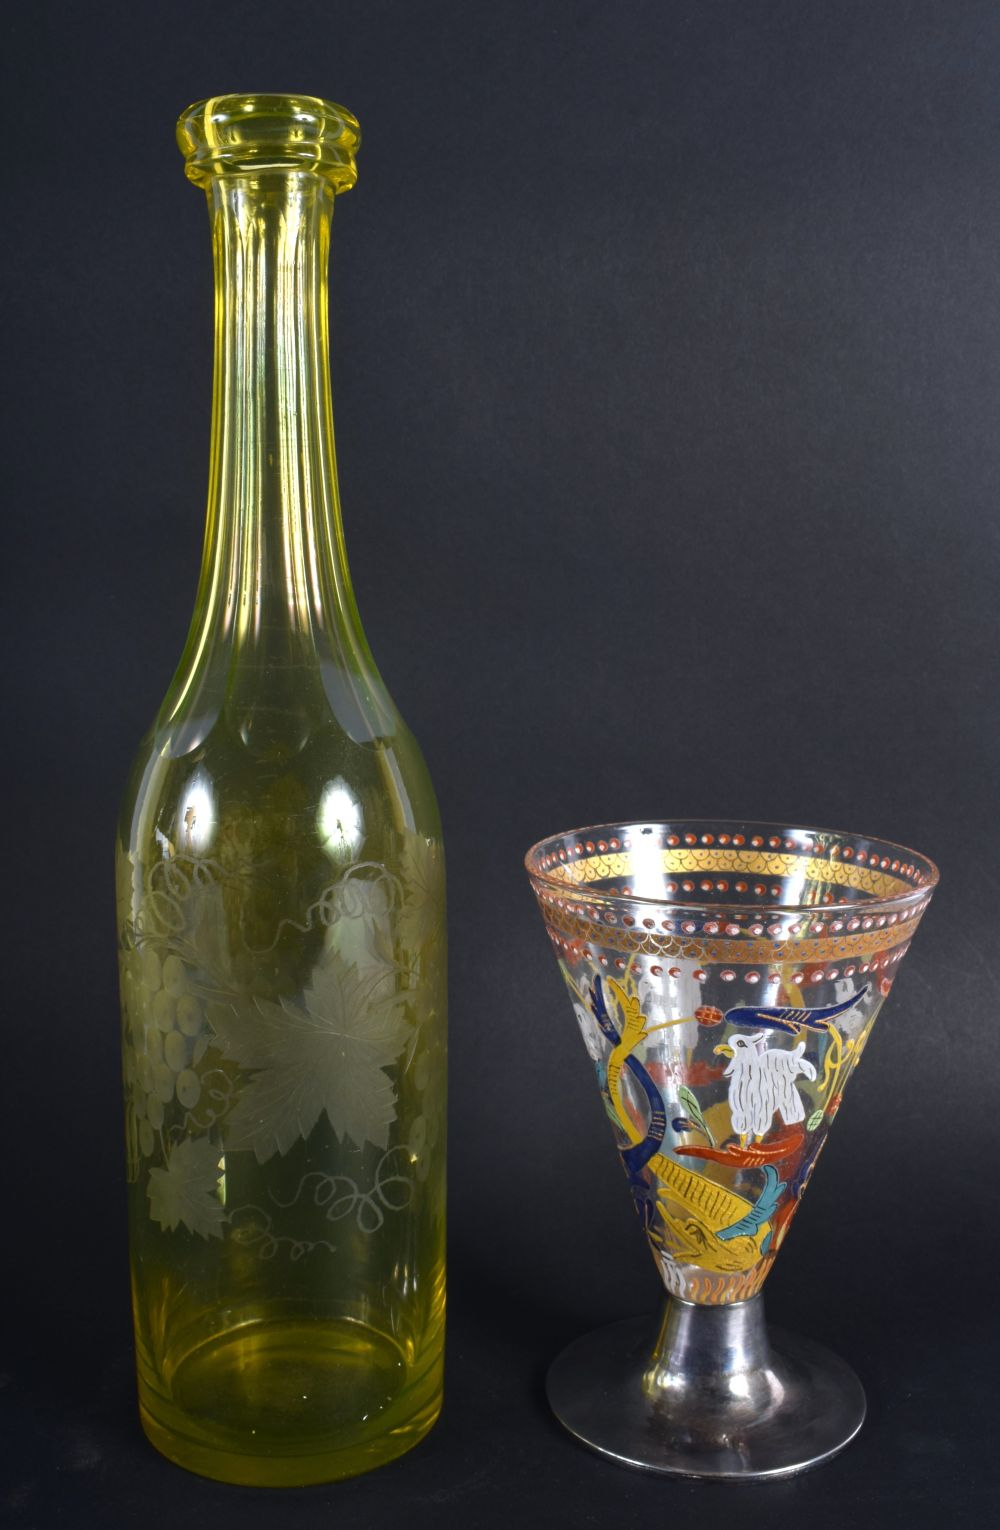 A VINTAGE YELLOW GLASS ENGRAVED DECANTER together with an early silver mounted European glass goblet